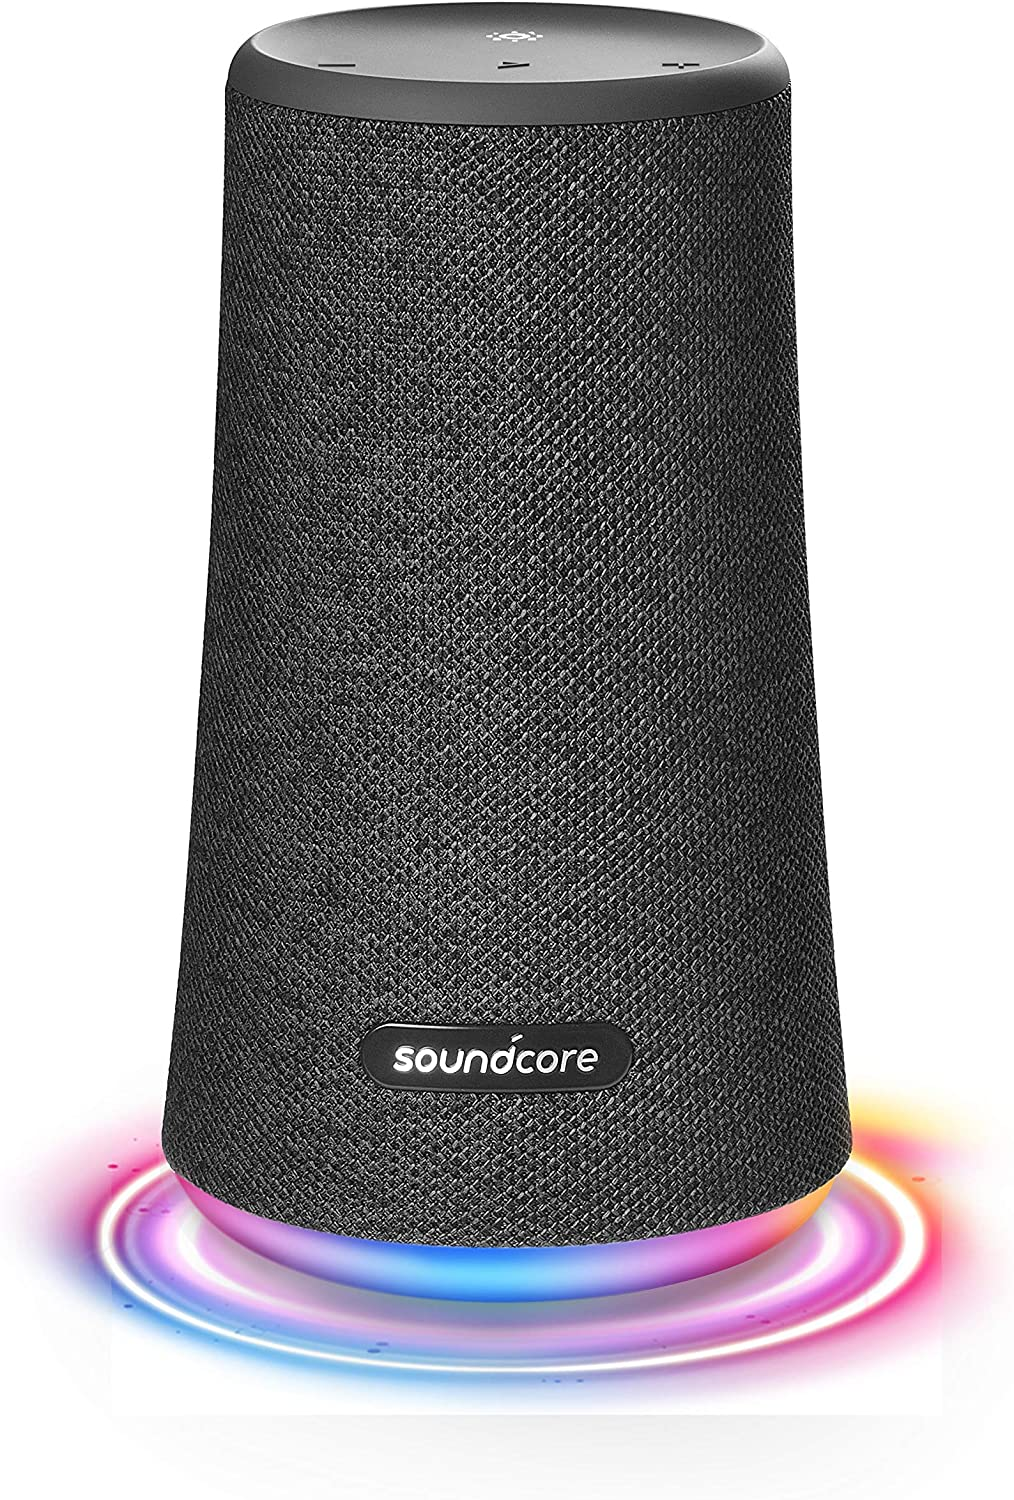 Anker A3162 Soundcore Flare+ Black Portable Bluetooth 360 Speaker All-Round Sound, Enhanced Bass & Ambient LED Light